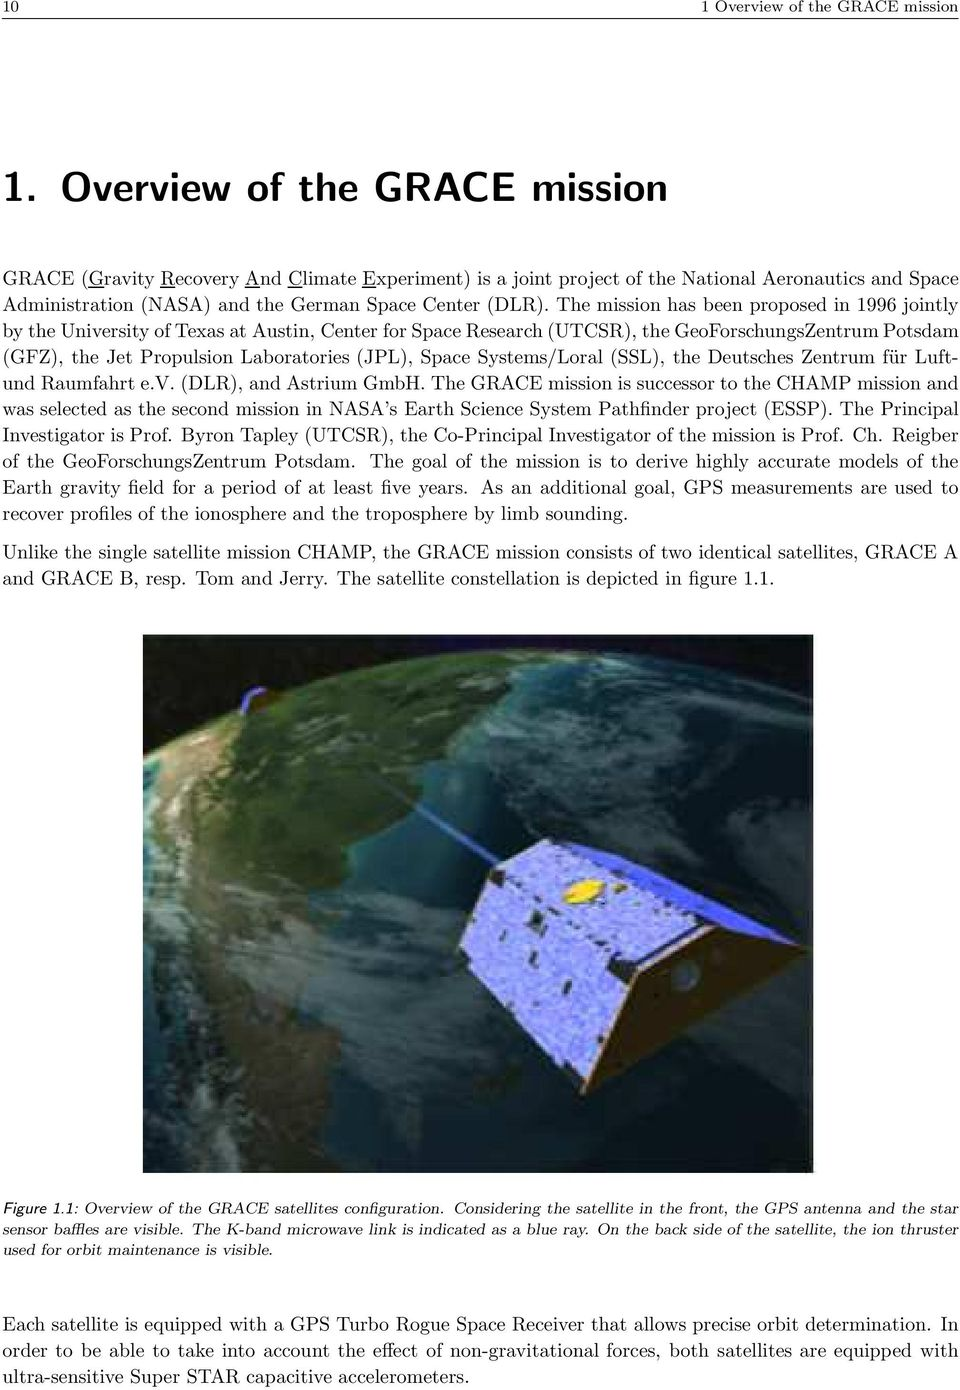 The mission has been proposed in 996 jointly by the University of Texas at Austin, Center for Space Research (UTCSR), the GeoForschungsZentrum Potsdam (GFZ), the Jet Propulsion Laboratories (JPL),